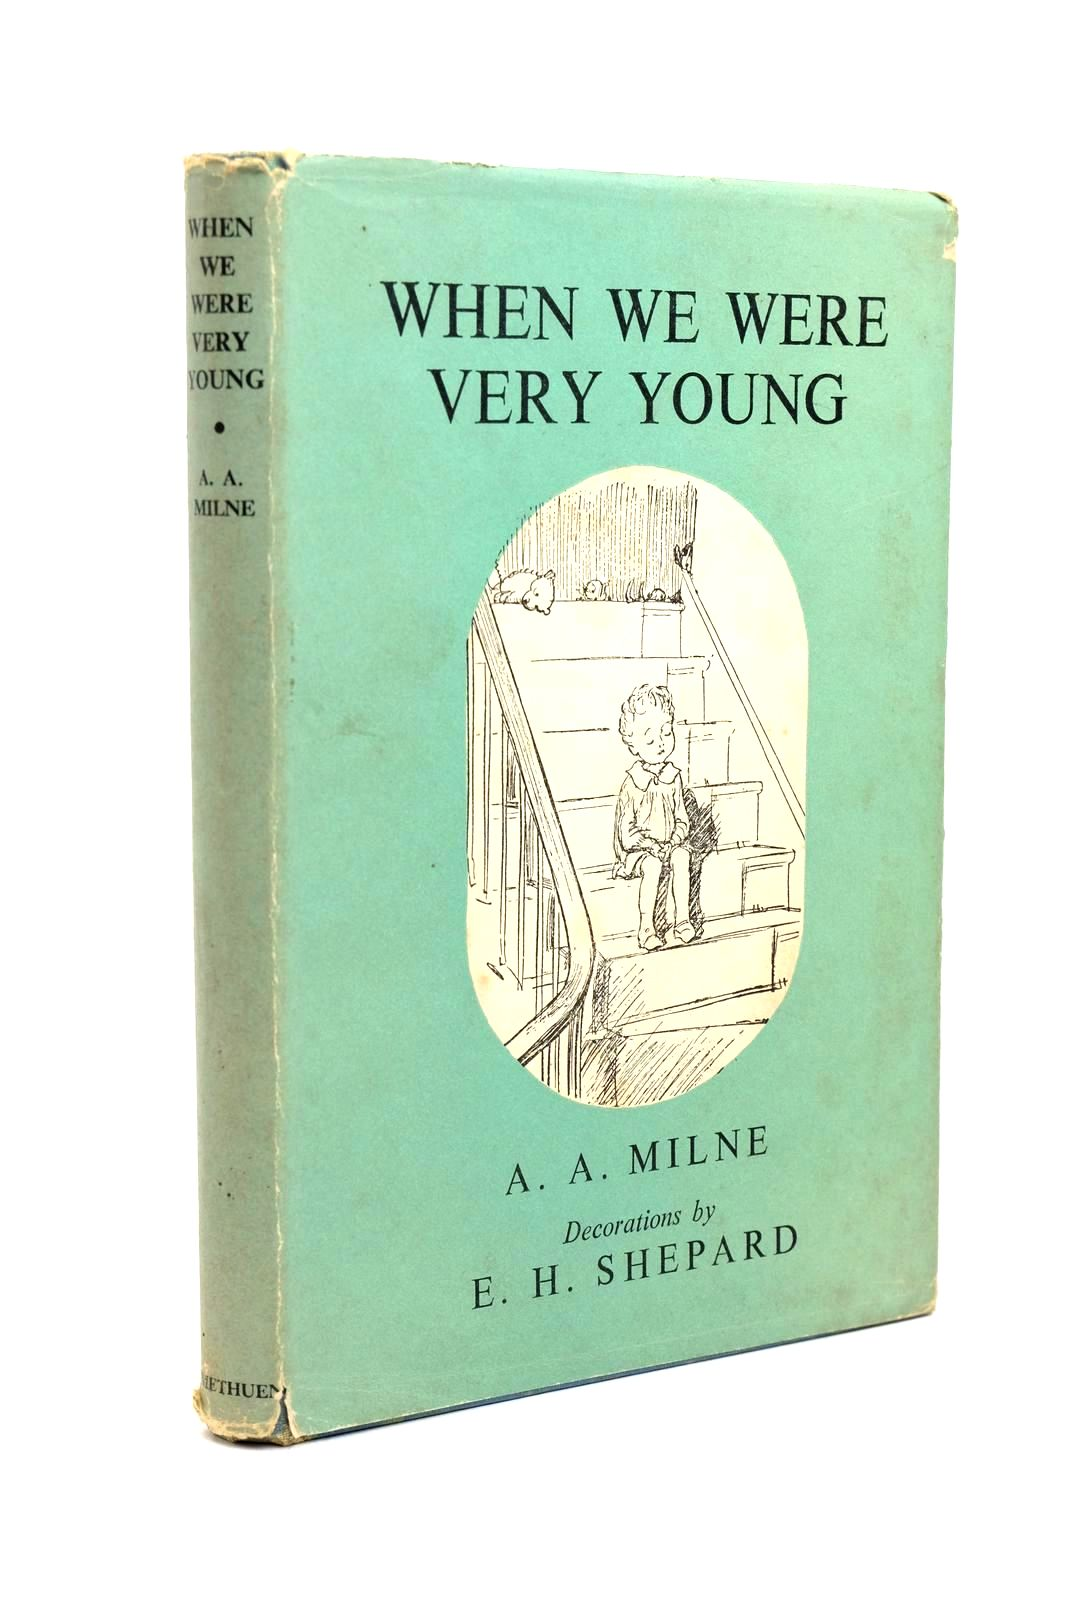 Photo of WHEN WE WERE VERY YOUNG written by Milne, A.A. illustrated by Shepard, E.H. published by Methuen & Co. Ltd. (STOCK CODE: 1321436)  for sale by Stella & Rose's Books